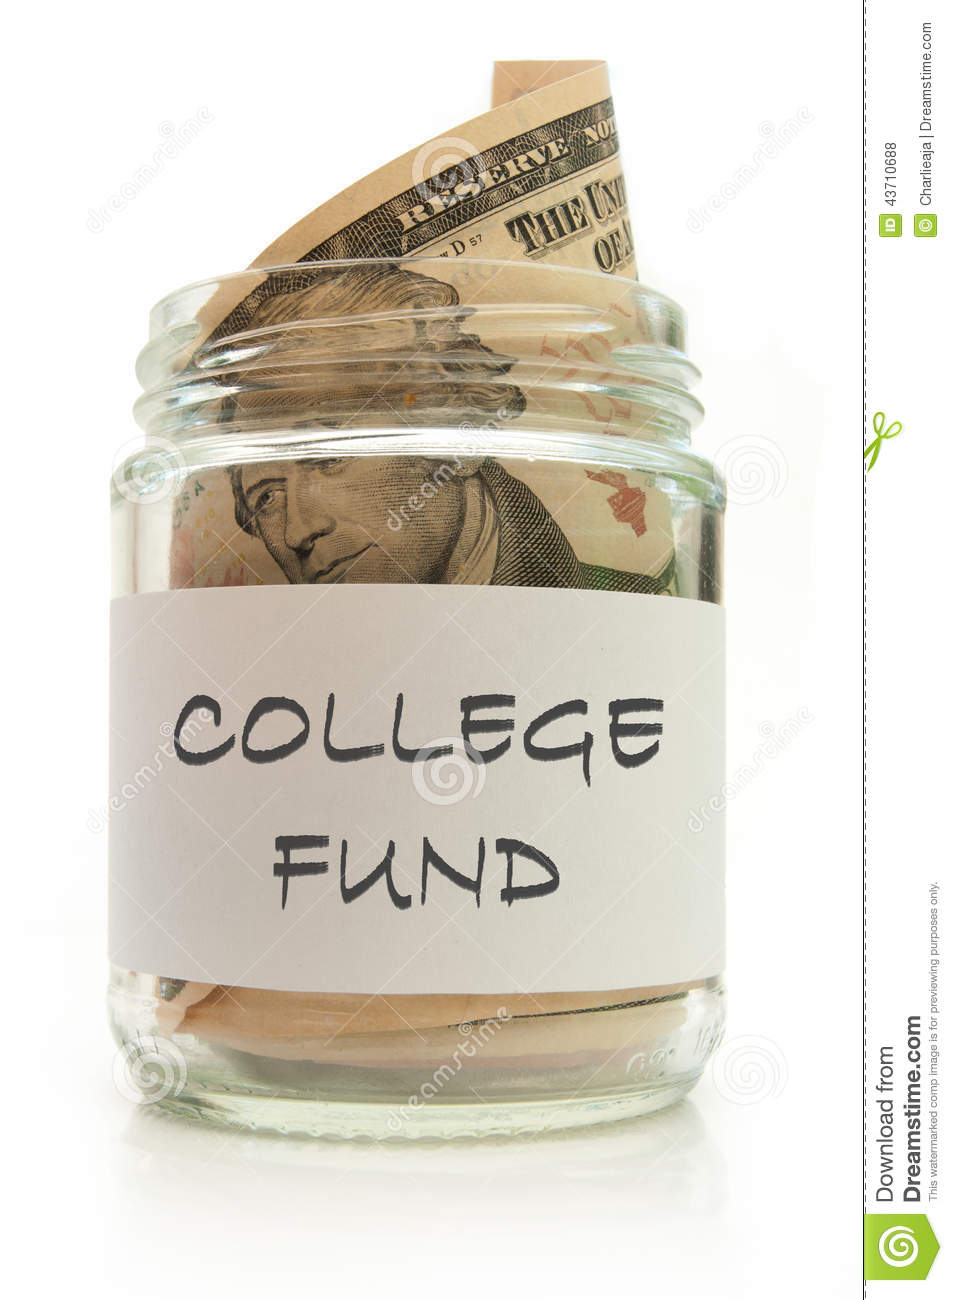 College Fund Stock Photo Image 43710688